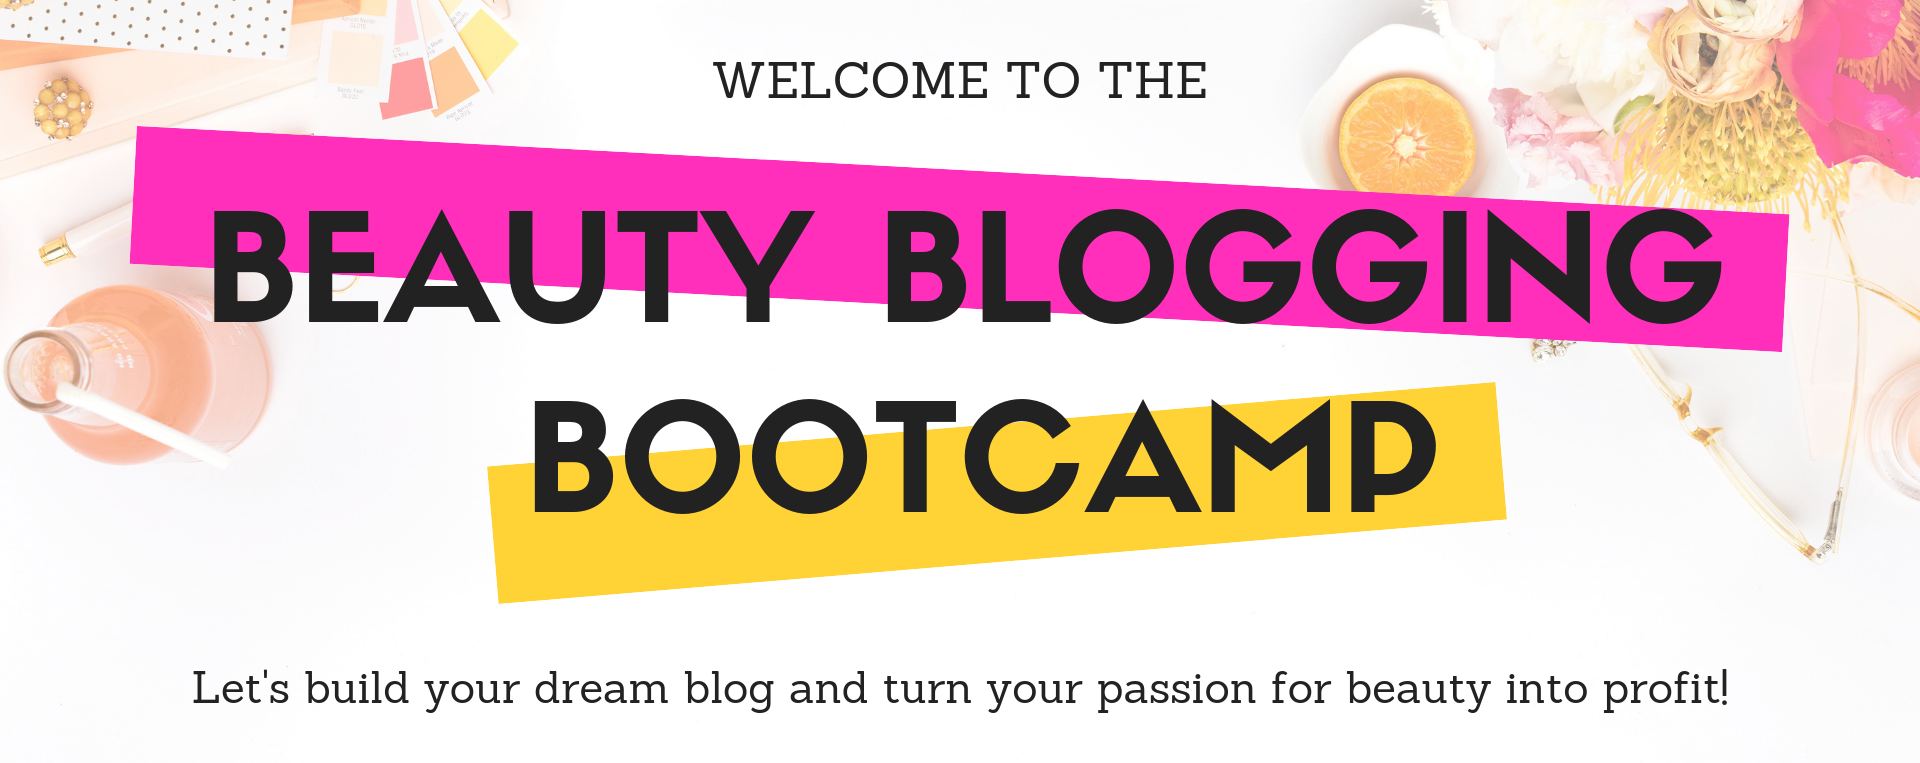 Beauty Blogging Bootcamp - Marisa Robinson Beauty